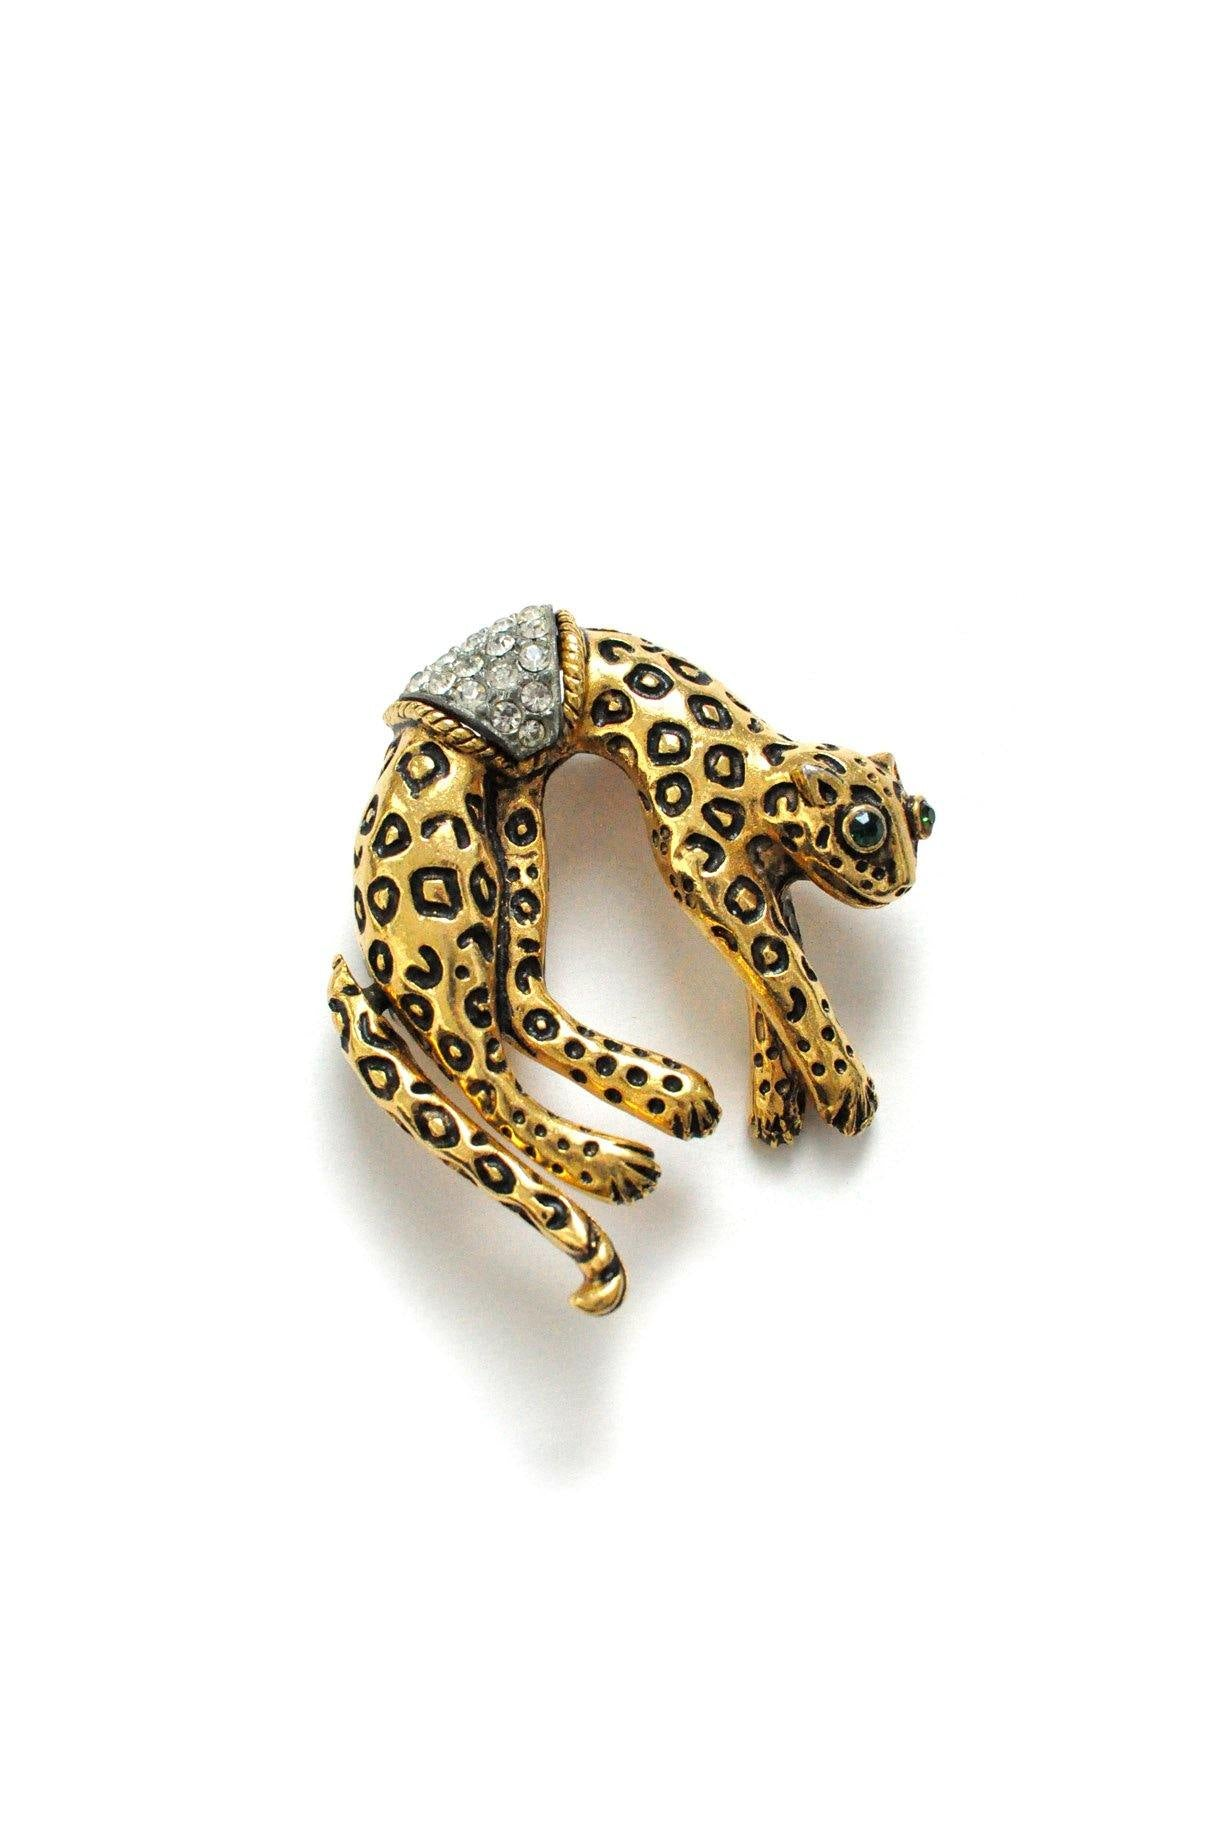 Jaguar Brooch